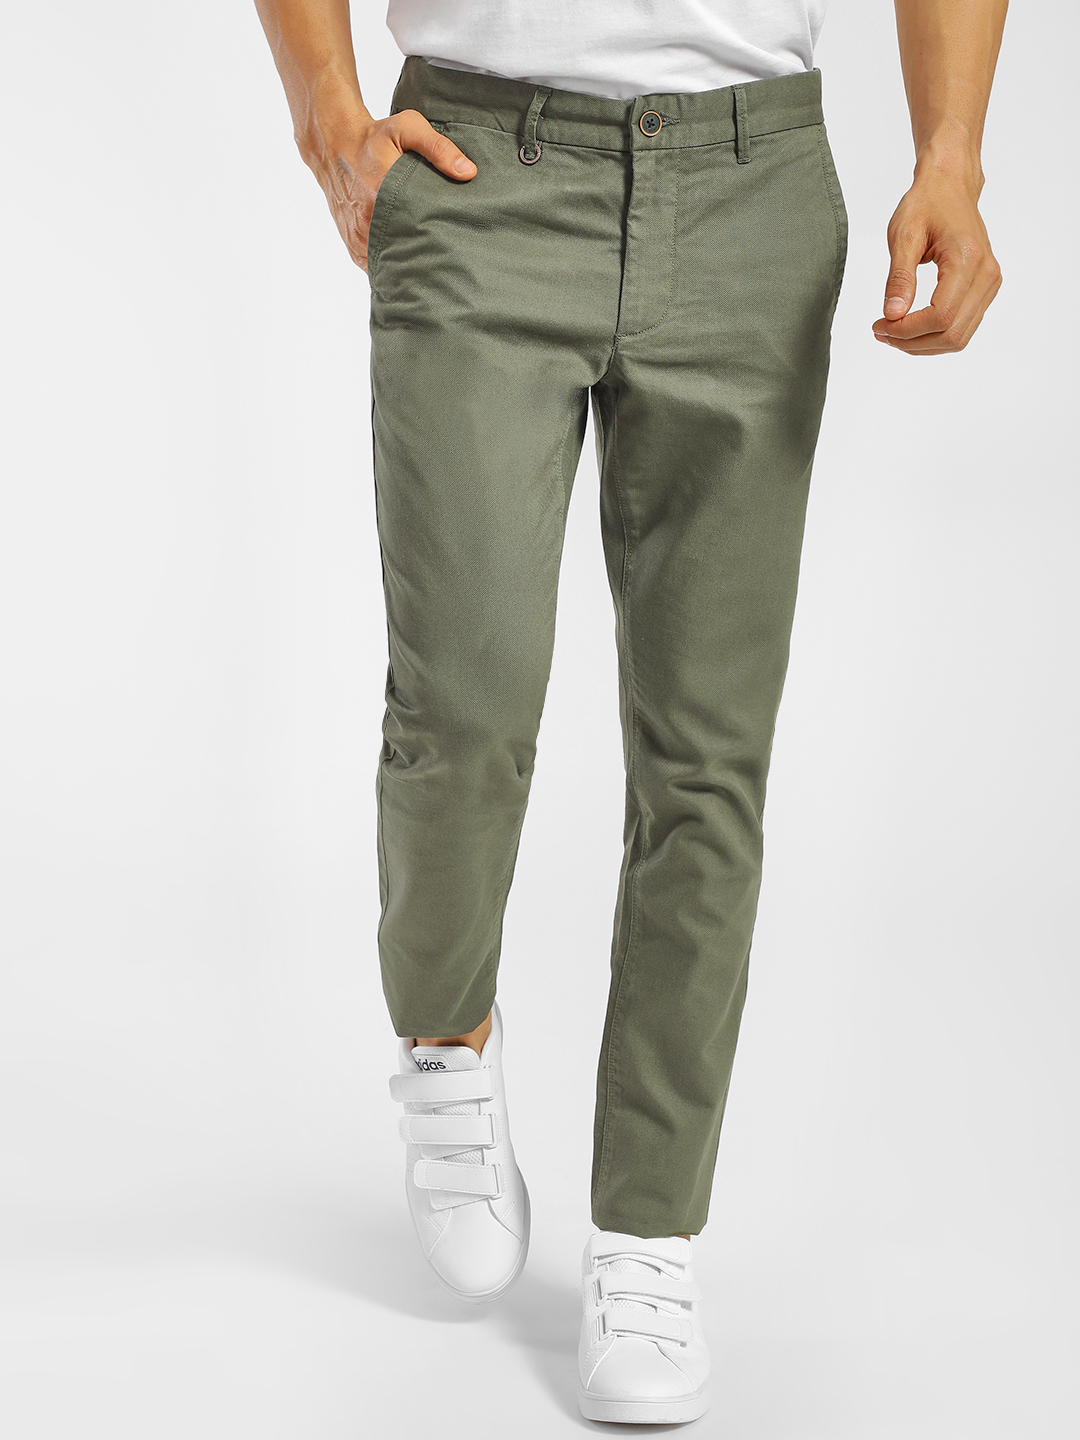 Indigo Nation Green Textured Slim Fit Trousers 1